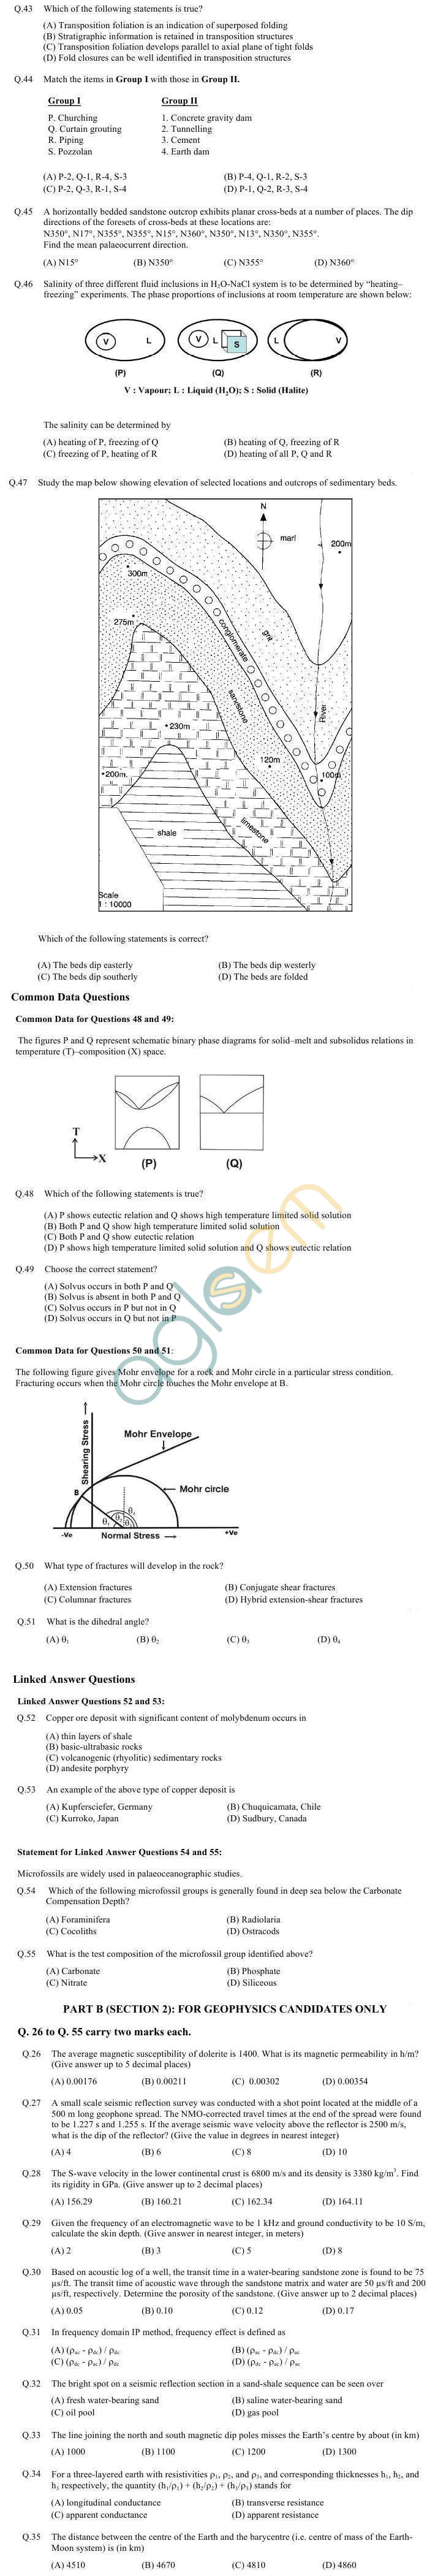 GATE 2012 Question Papers: Geology and Geophysics [GG] with Answers in gate  Category